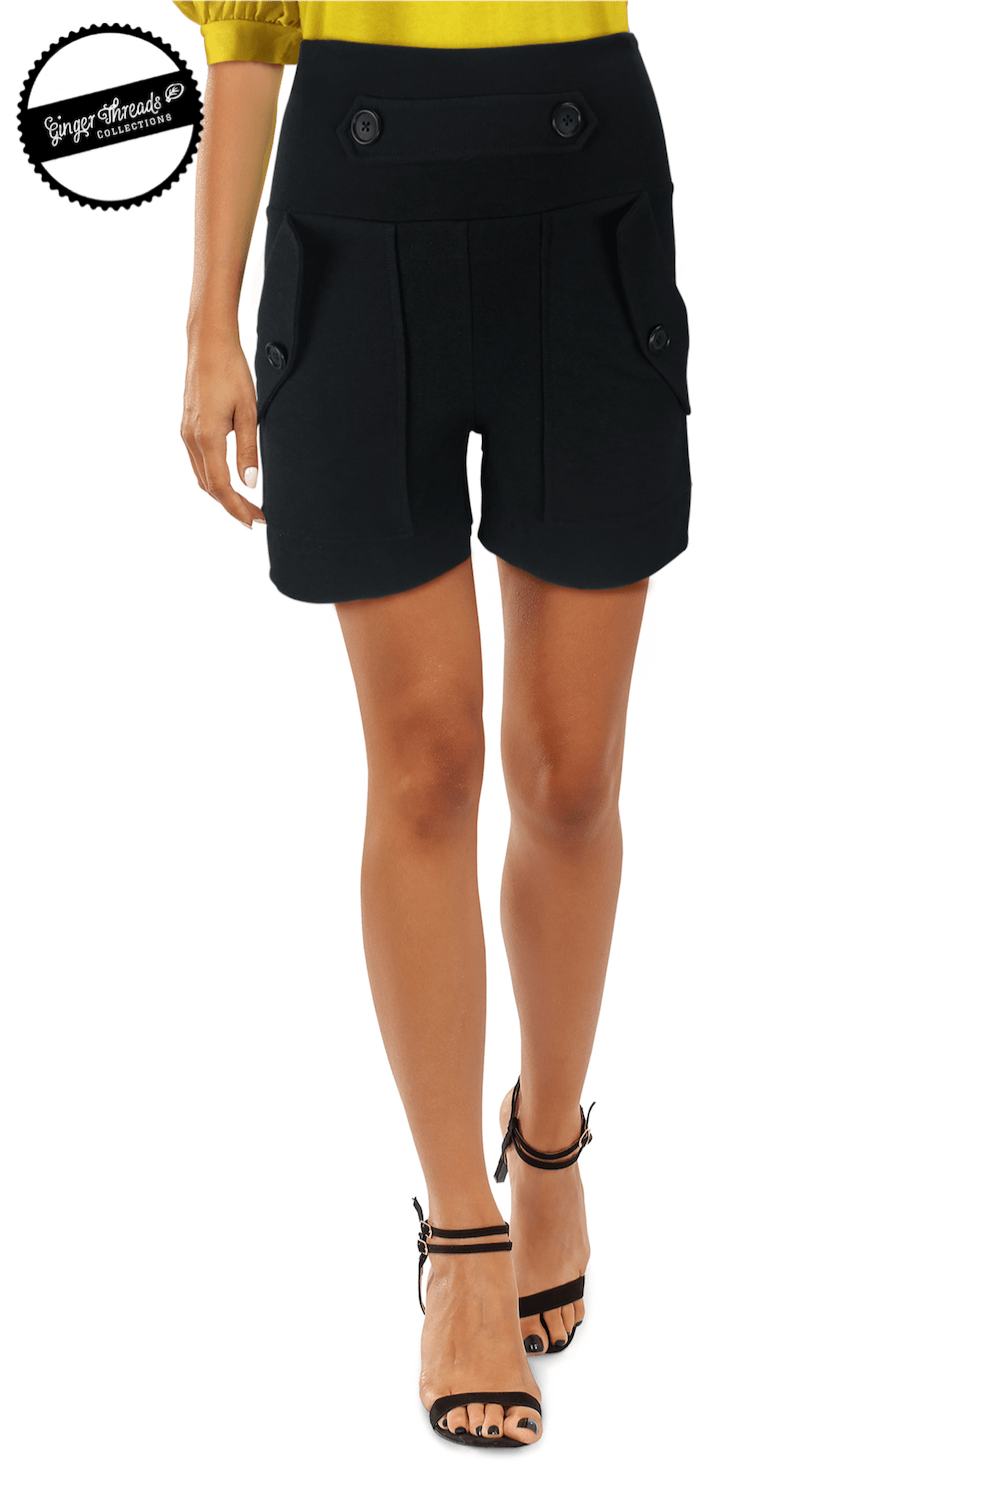 Ginger Threads Collections shorts Black high-waisted mid-thigh shorts with flap pockets